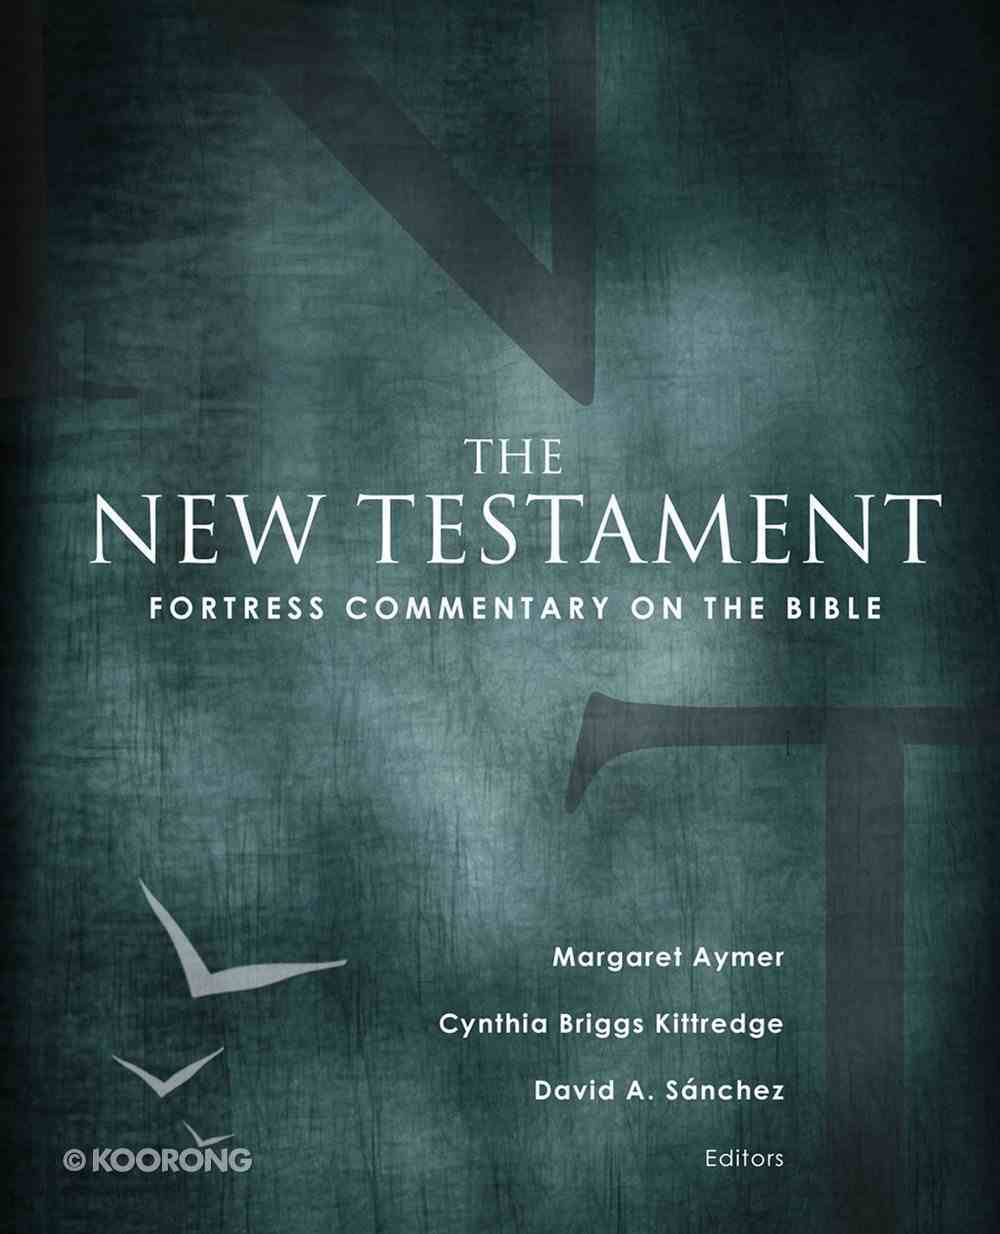 Fortress Commentary on the Bible (Fortress Commentary On The Bible Series) eBook